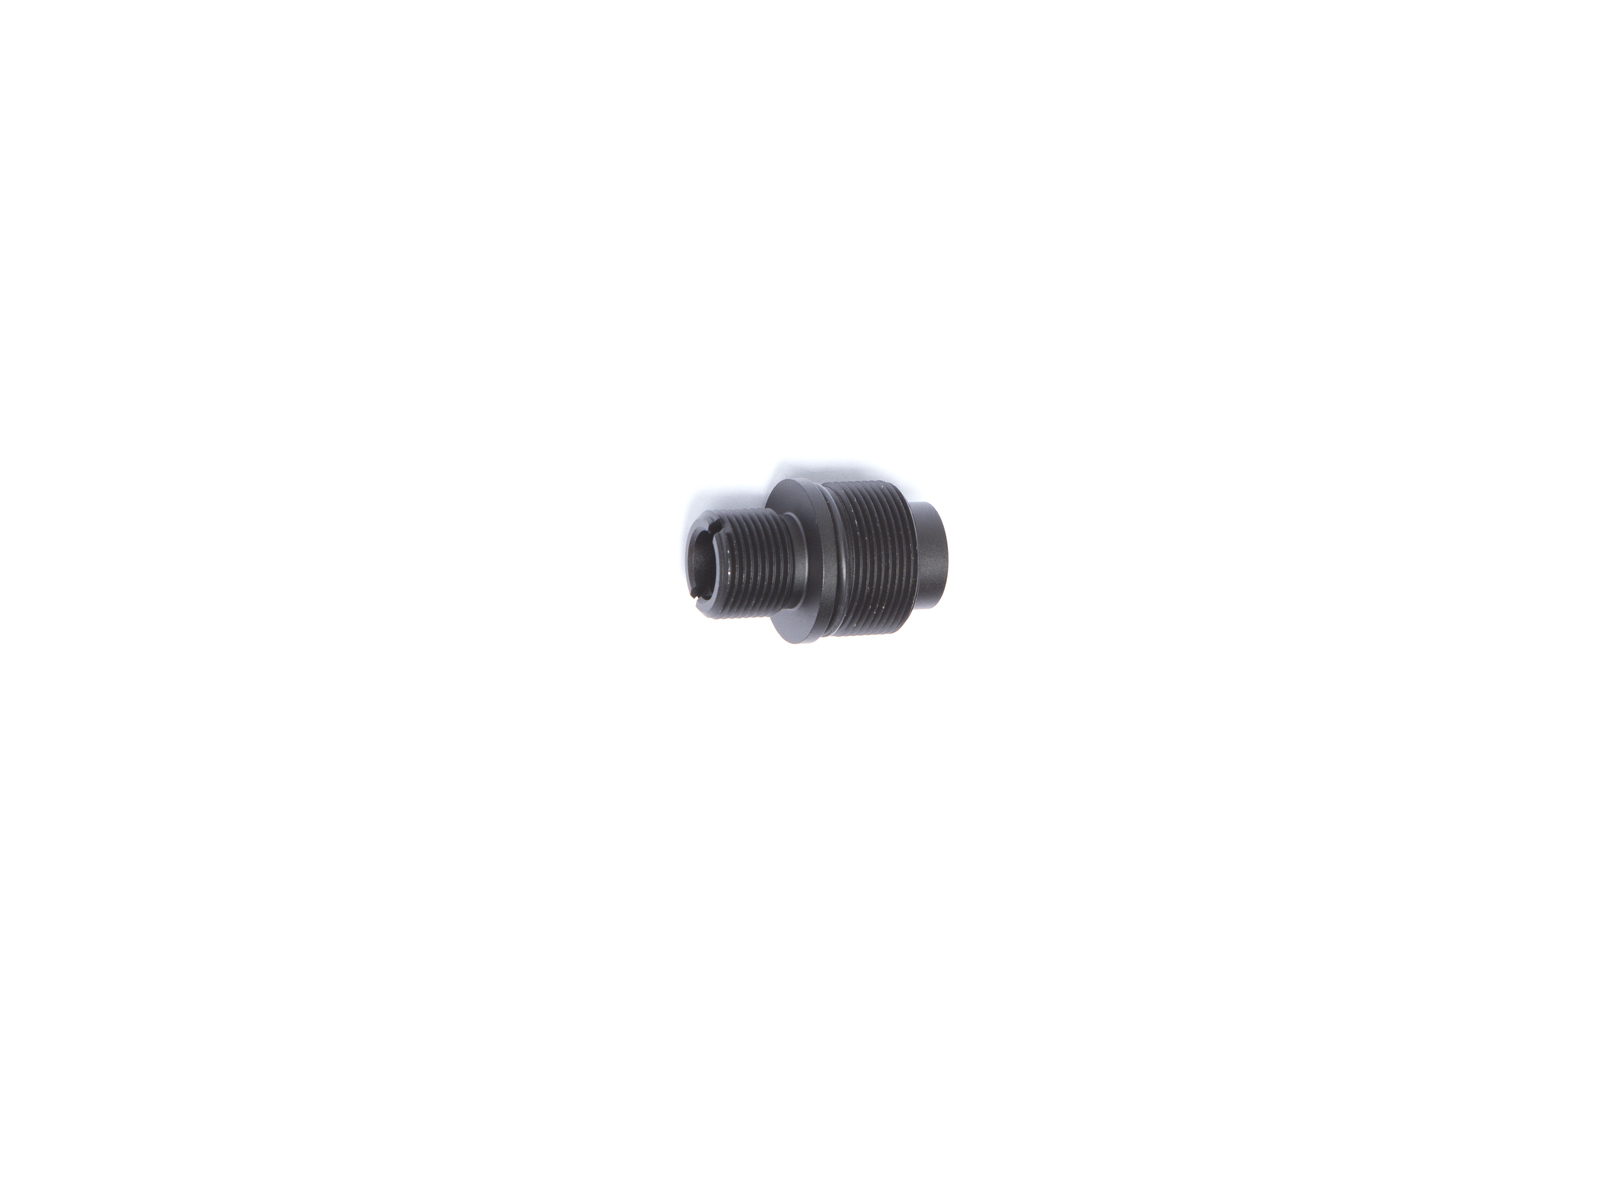 ASG Adaptor, 14mm CCW for M40A3 product image